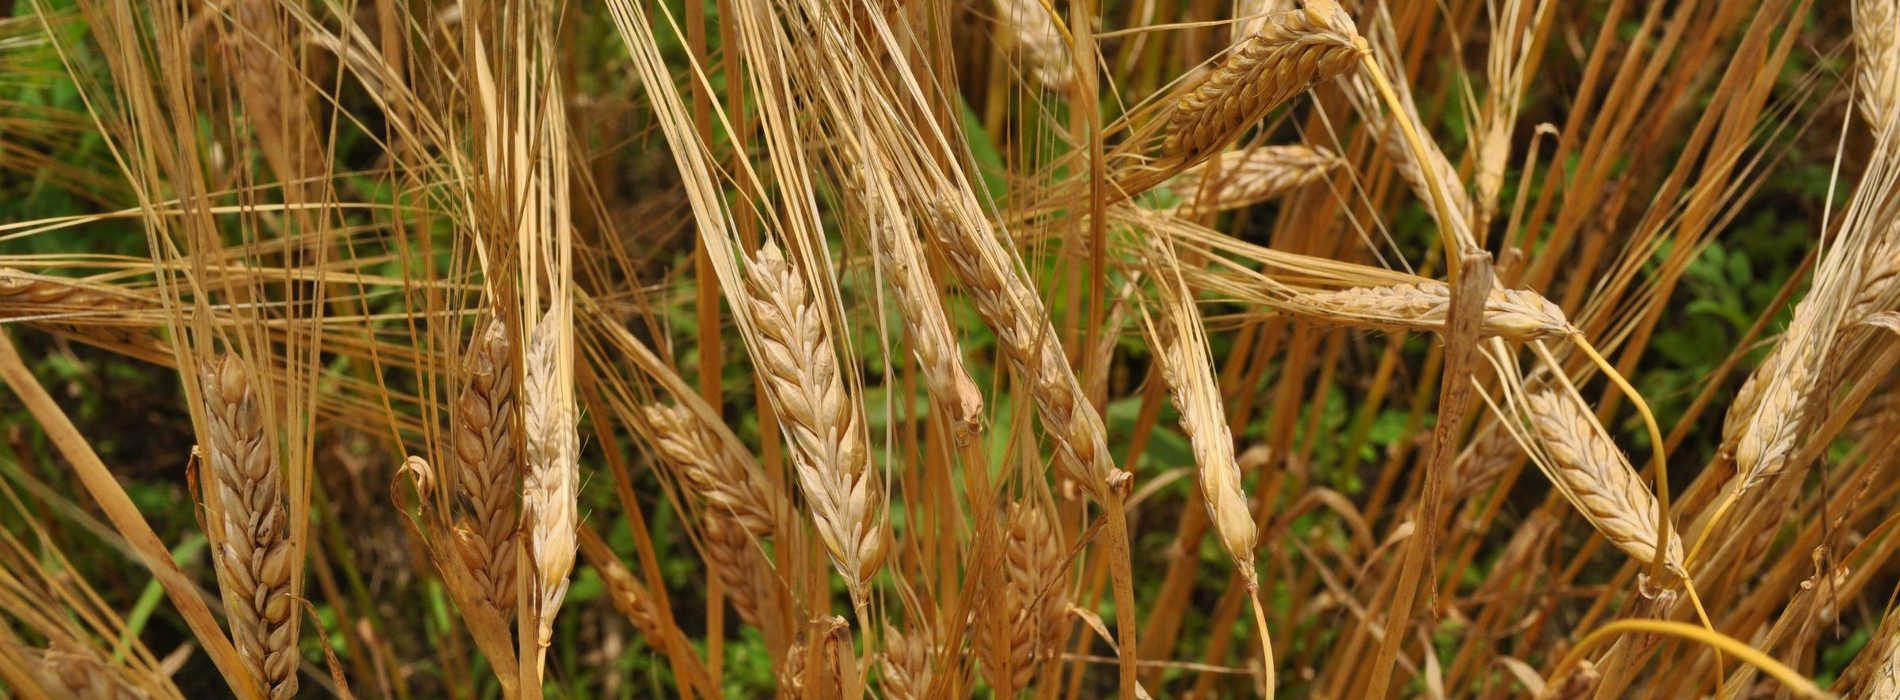 Zambian Breweries supports barley farmers